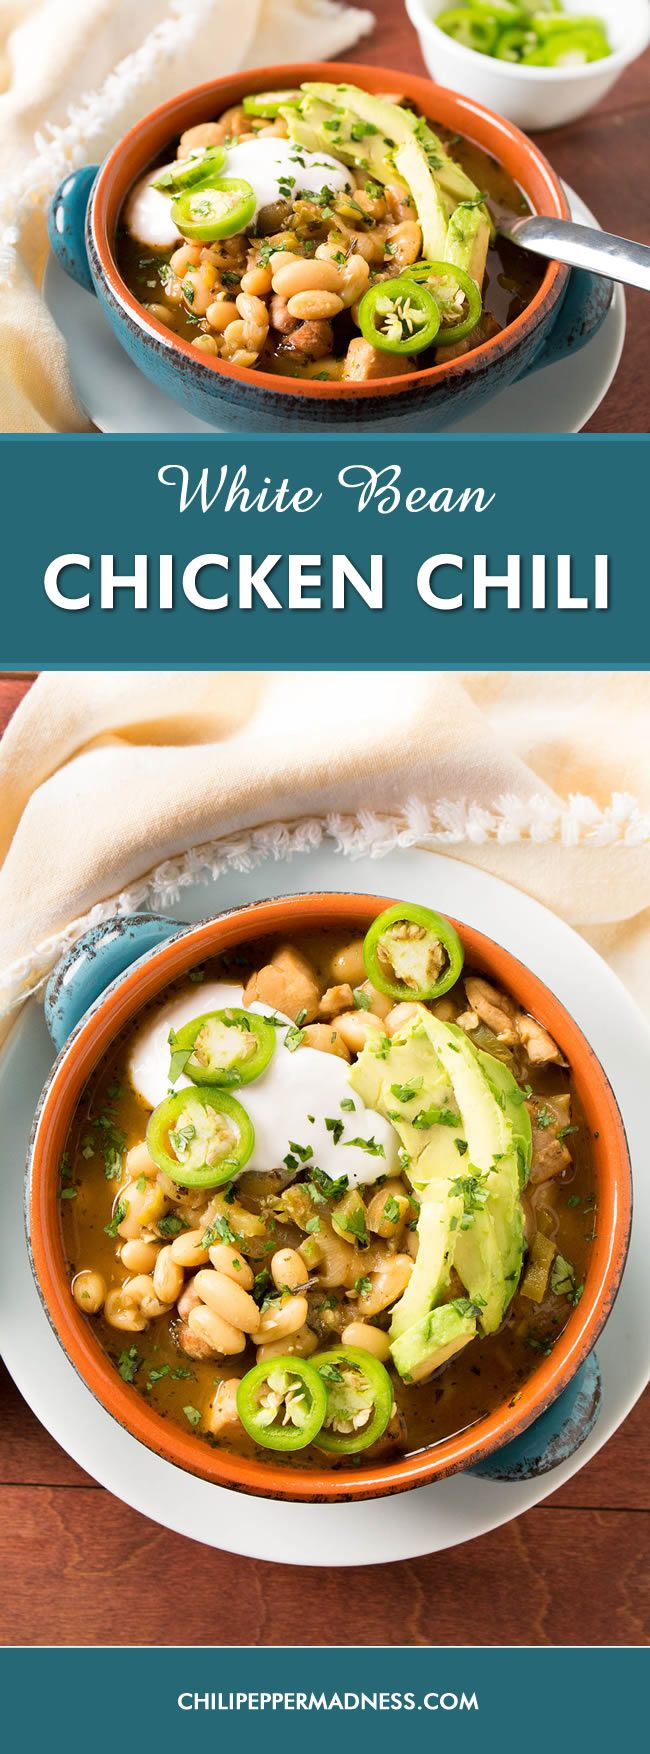 White Bean Chicken Chili - A hearty one-pot chili recipe with plenty ...